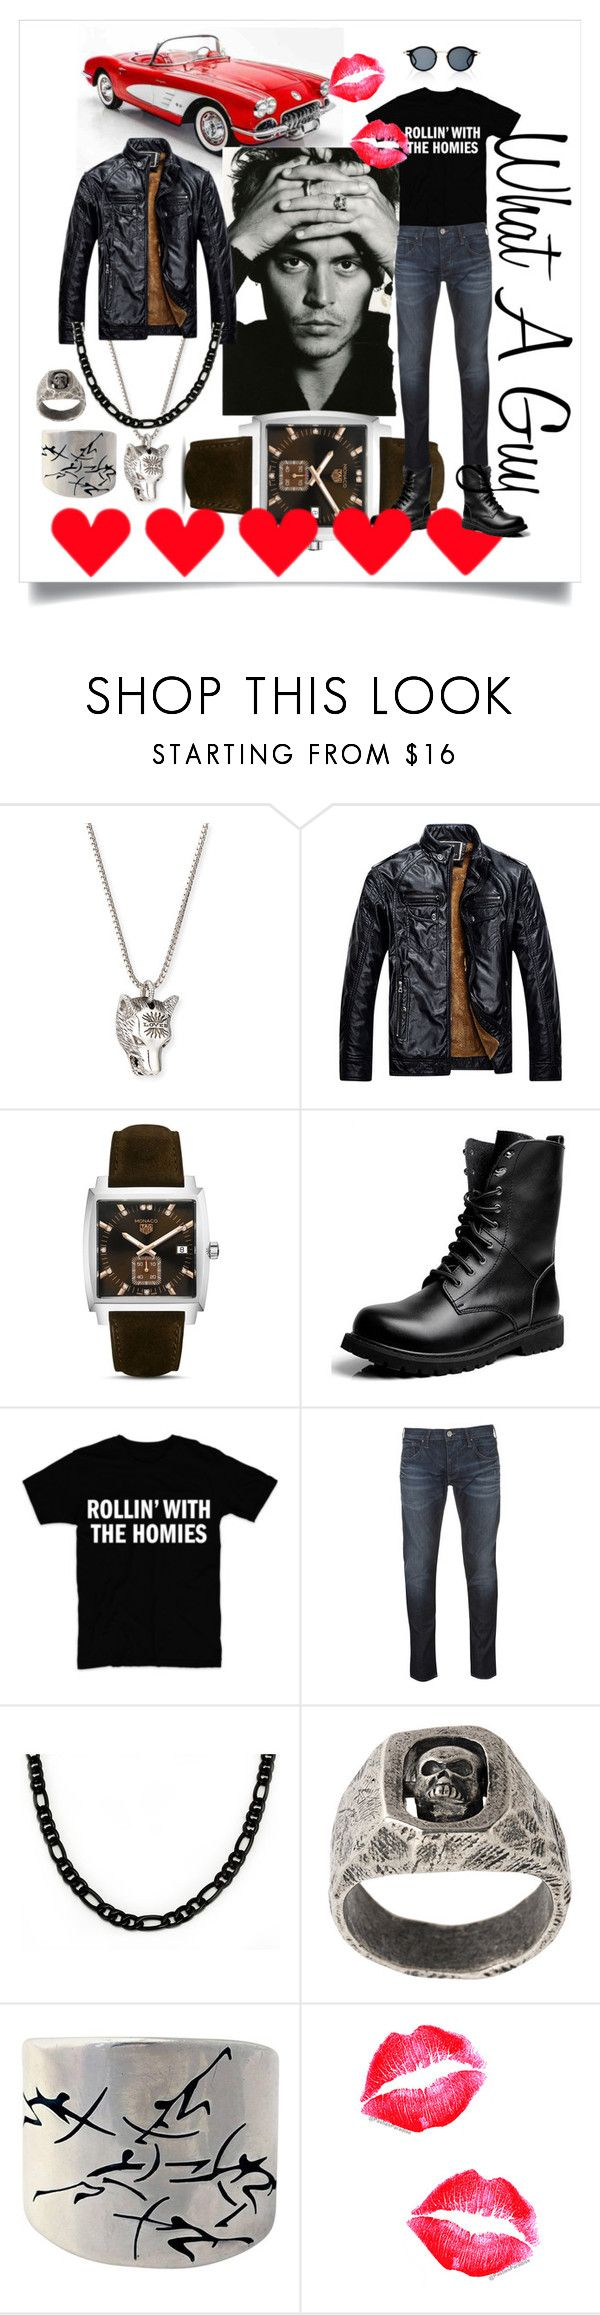 """What A Guy"" by tengoodcats ❤ liked on Polyvore featuring Gucci, TAG Heuer, Armani Jeans, Tobias Wistisen, Antonio Pineda, Thom Browne, men's fashion and menswear"